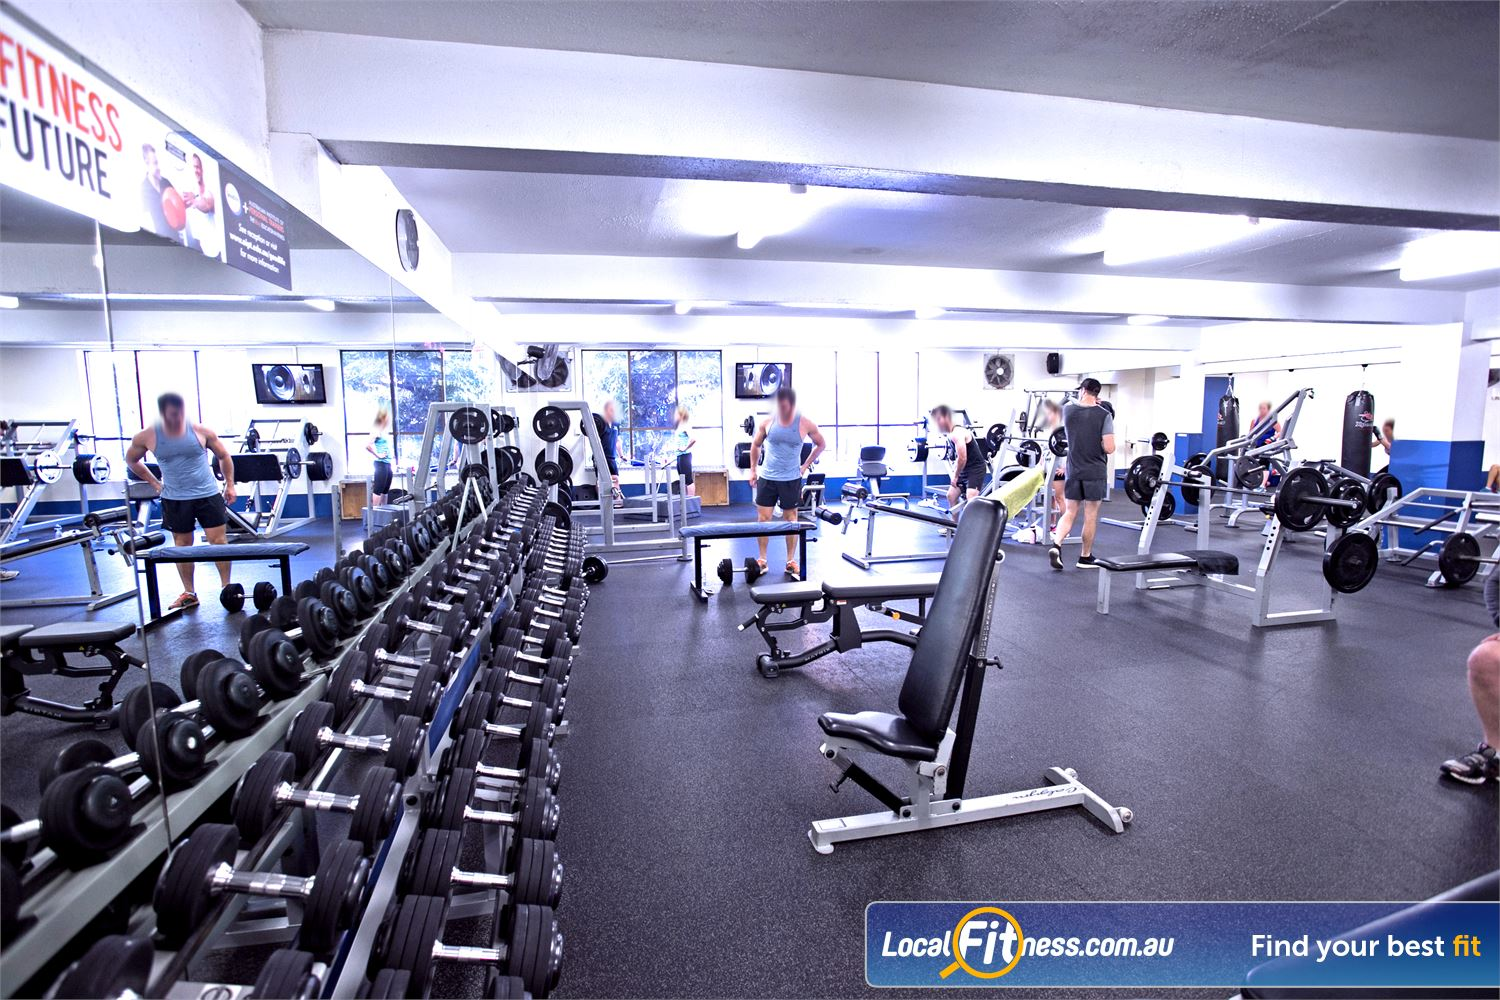 Goodlife Health Clubs Mitcham Kingswood Plenty of free-weights to choose from.